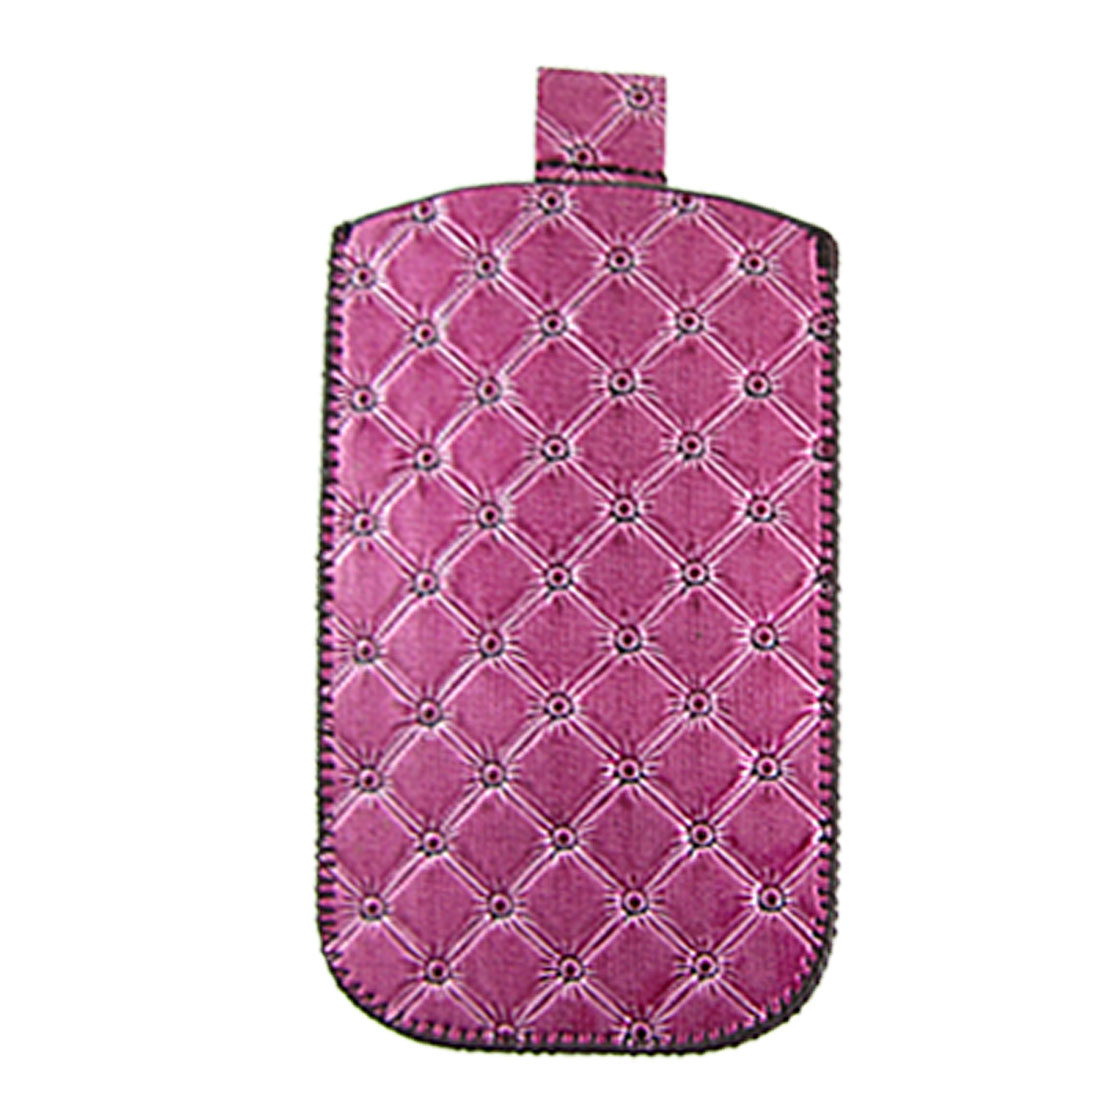 Stitching Rim Grid Texture Purple Faux Leather Pull Up Pouch for iPhone 4 4G